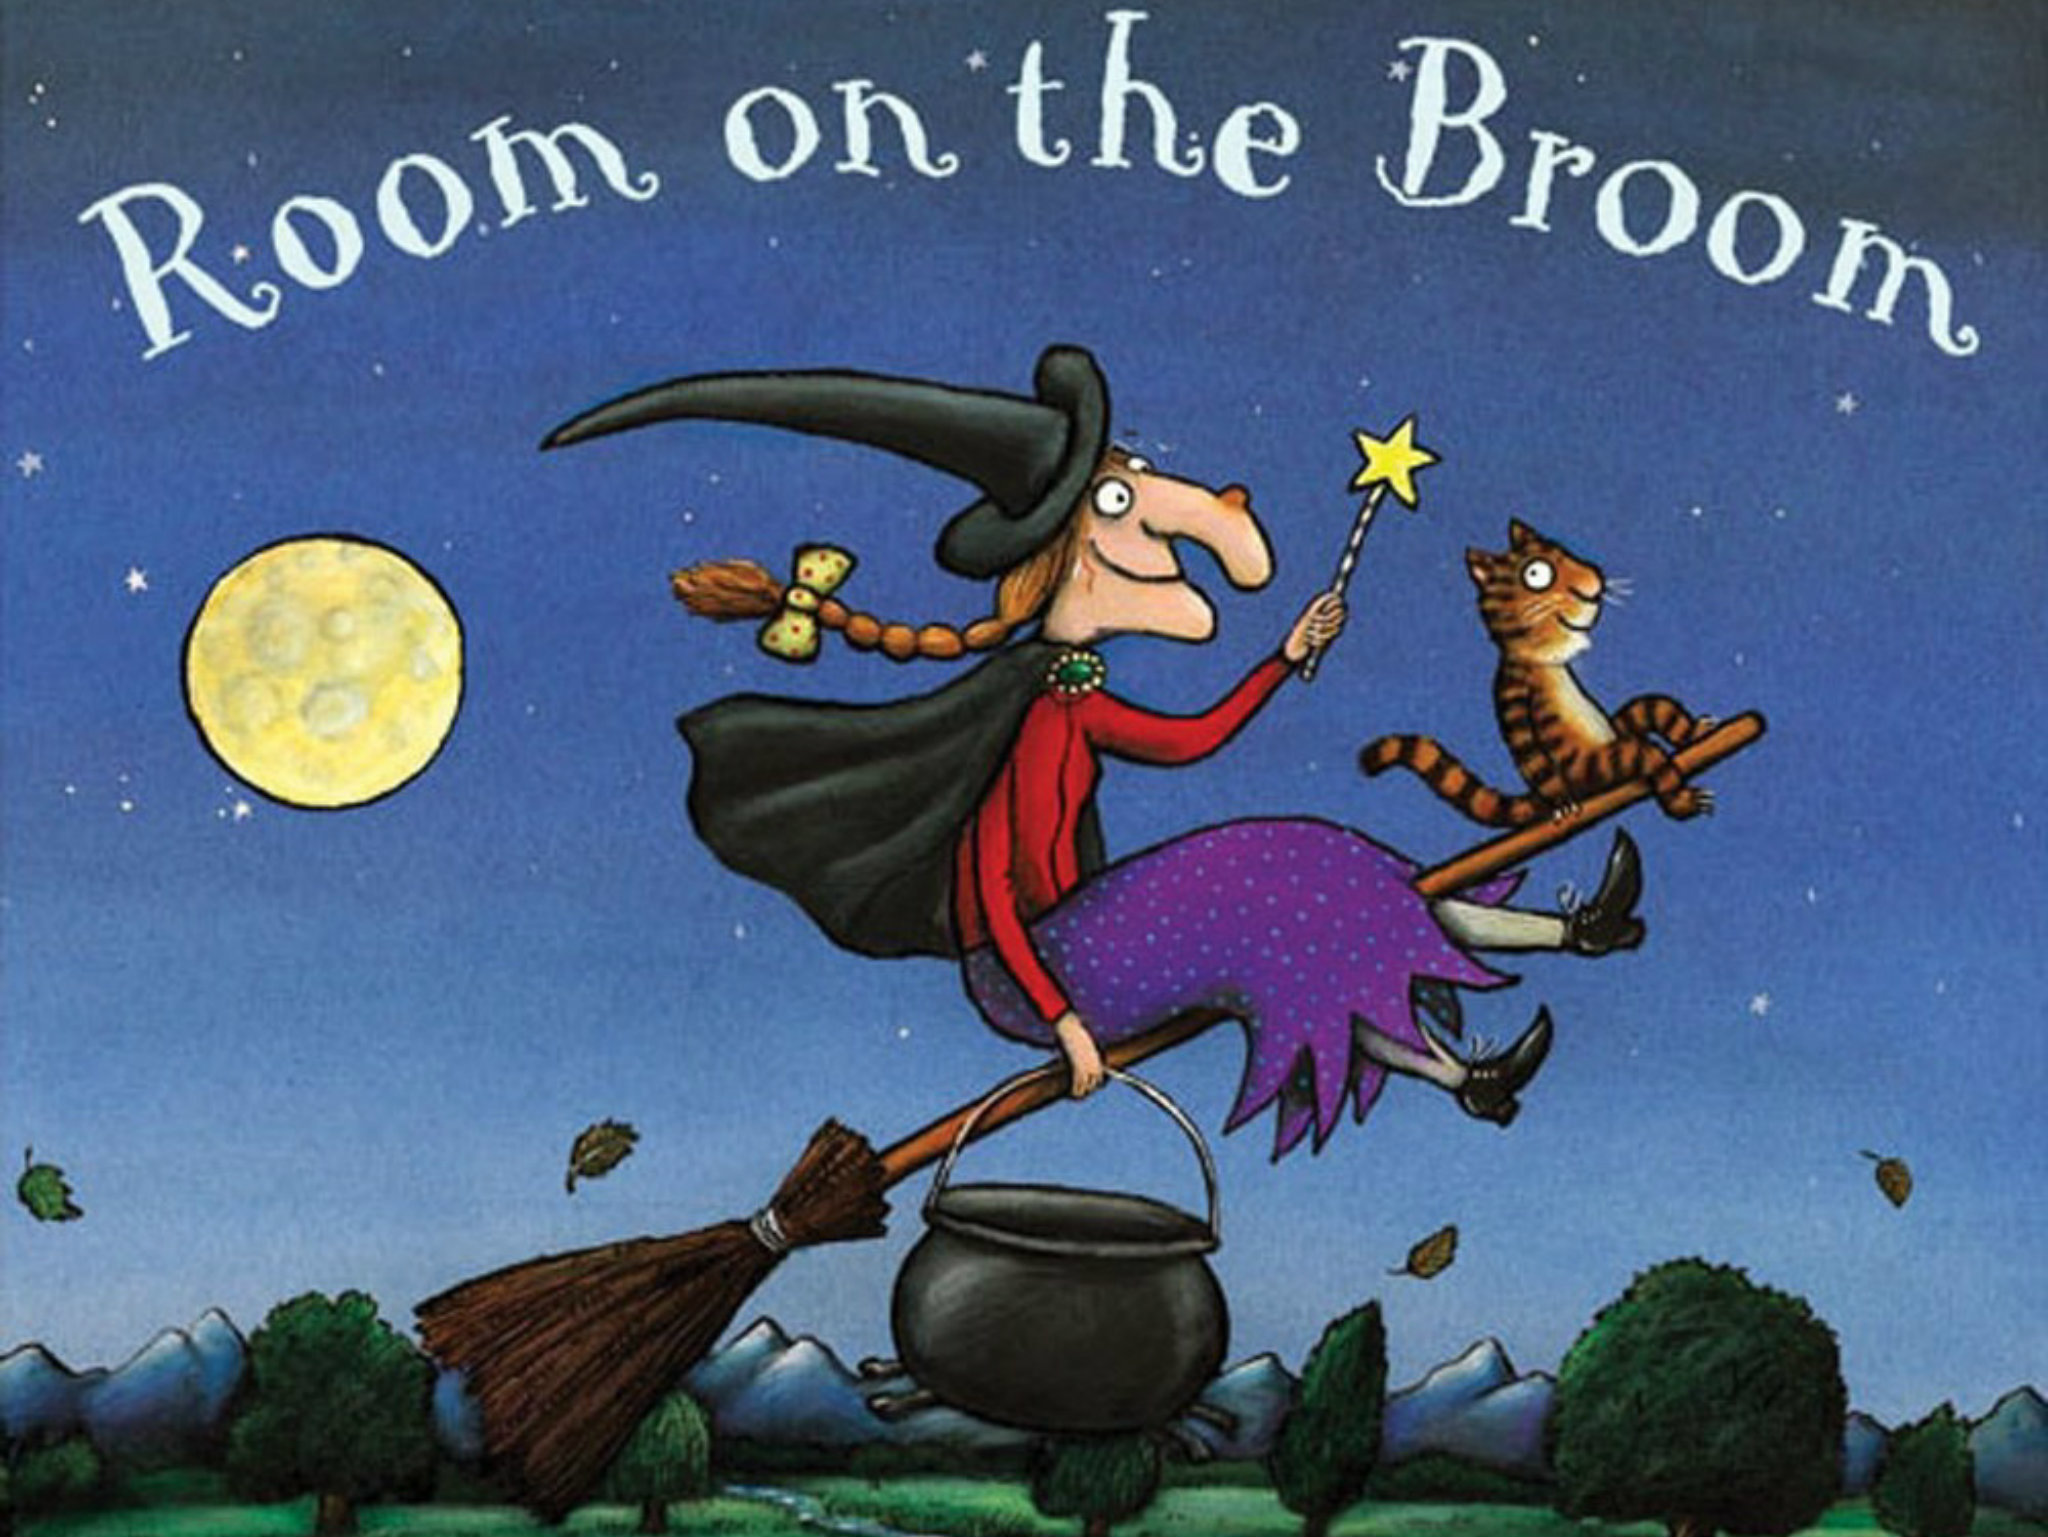 Julia Donaldson (Room on the Broom)